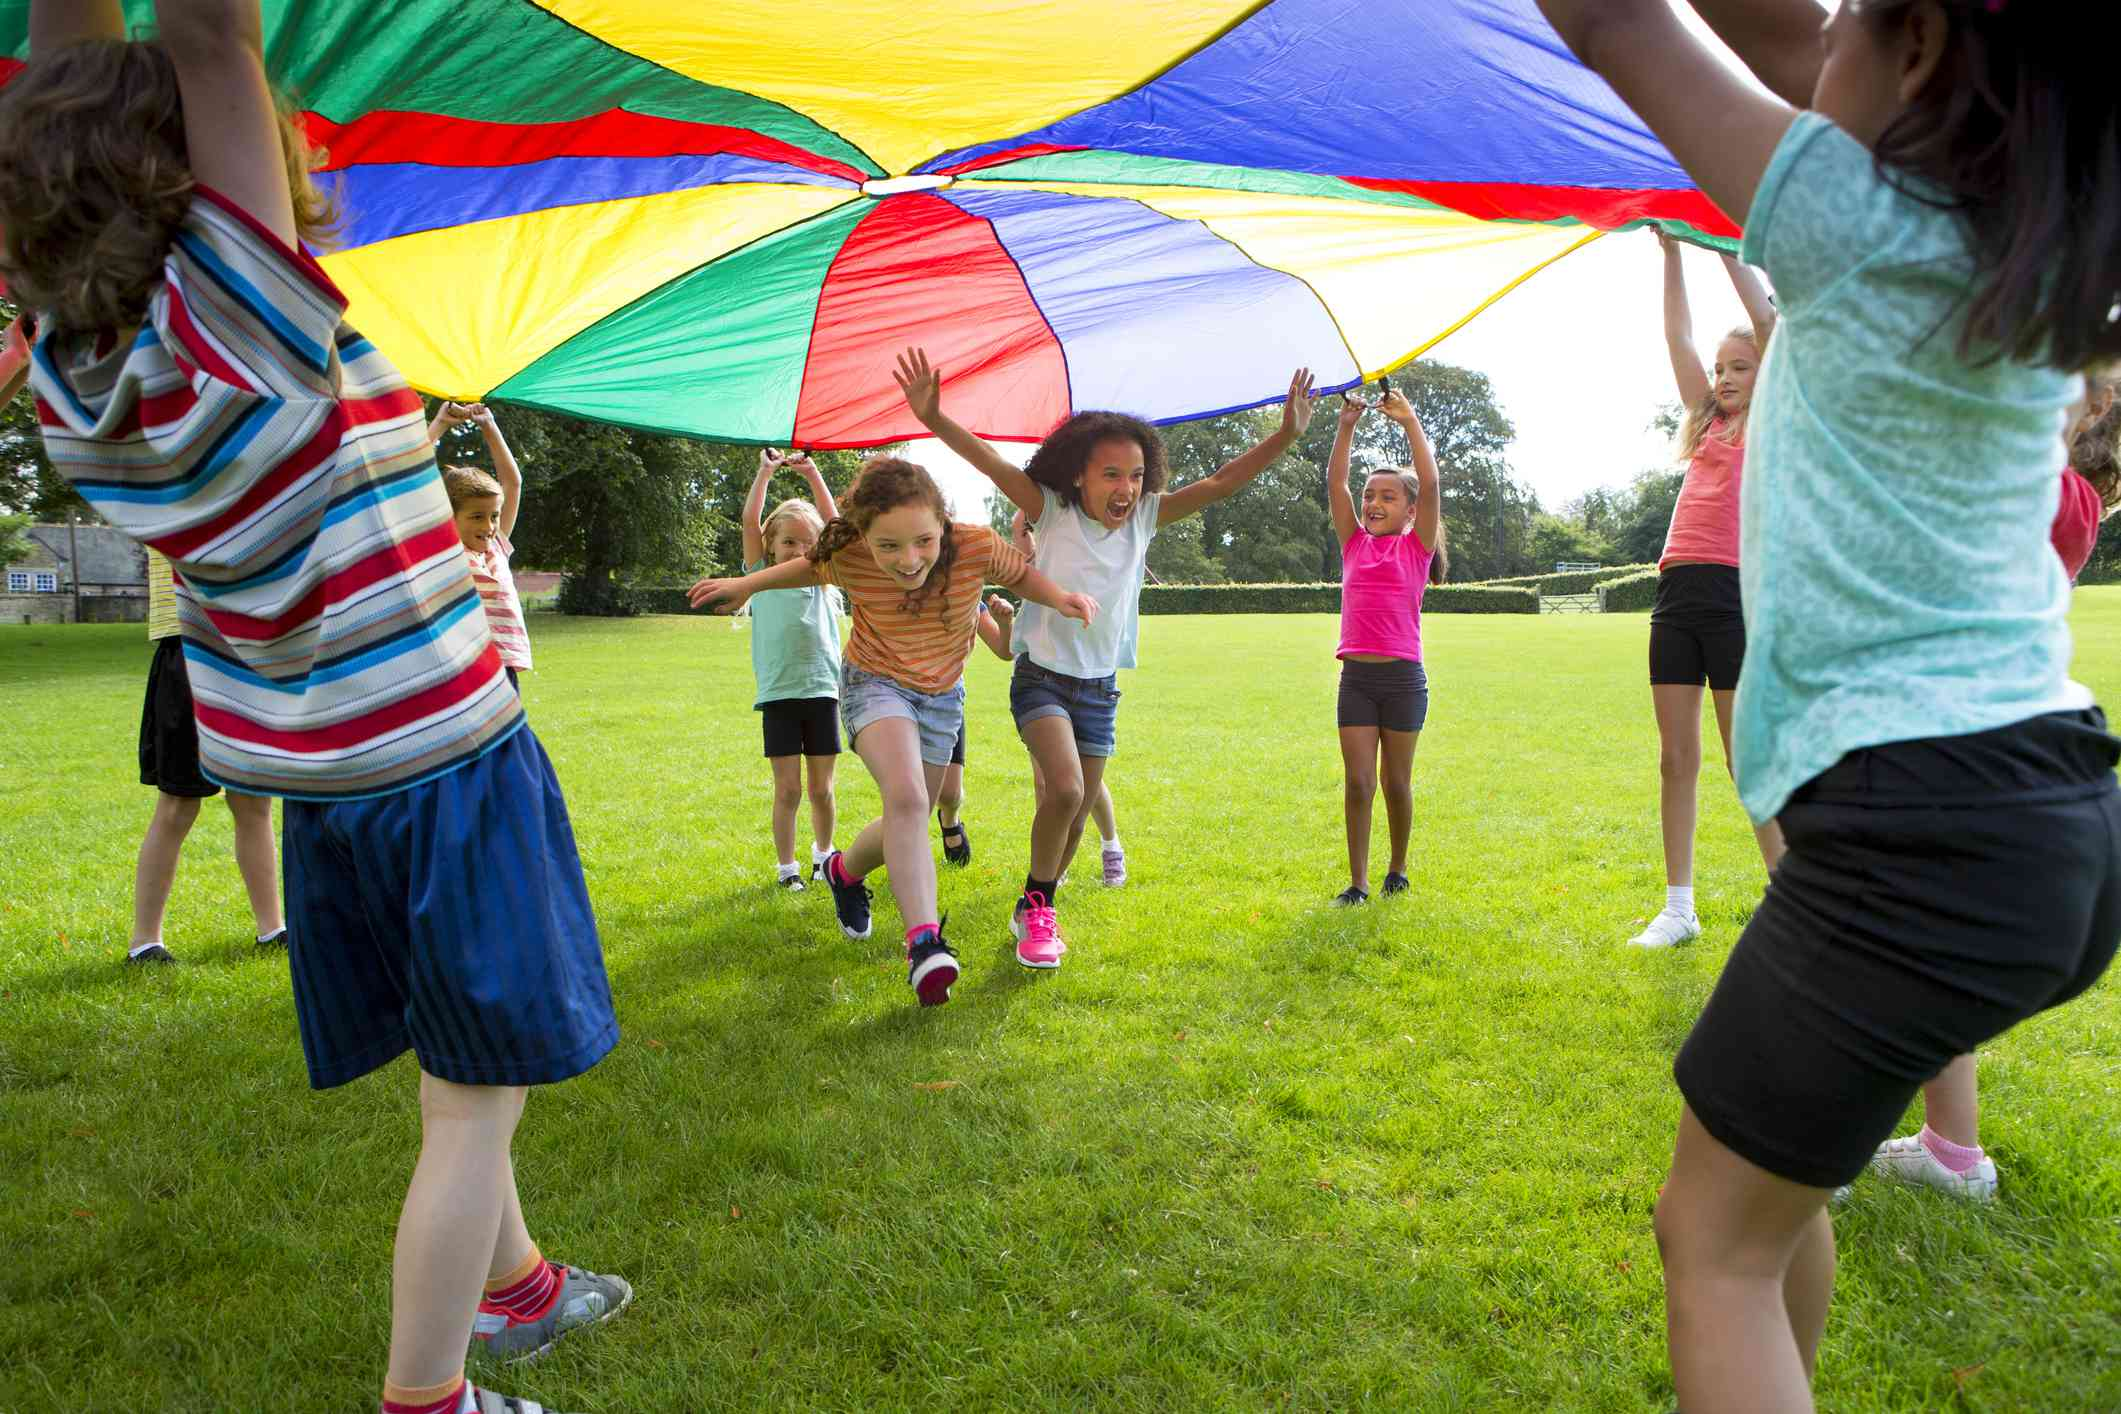 Children playing a game with a colorful parachute